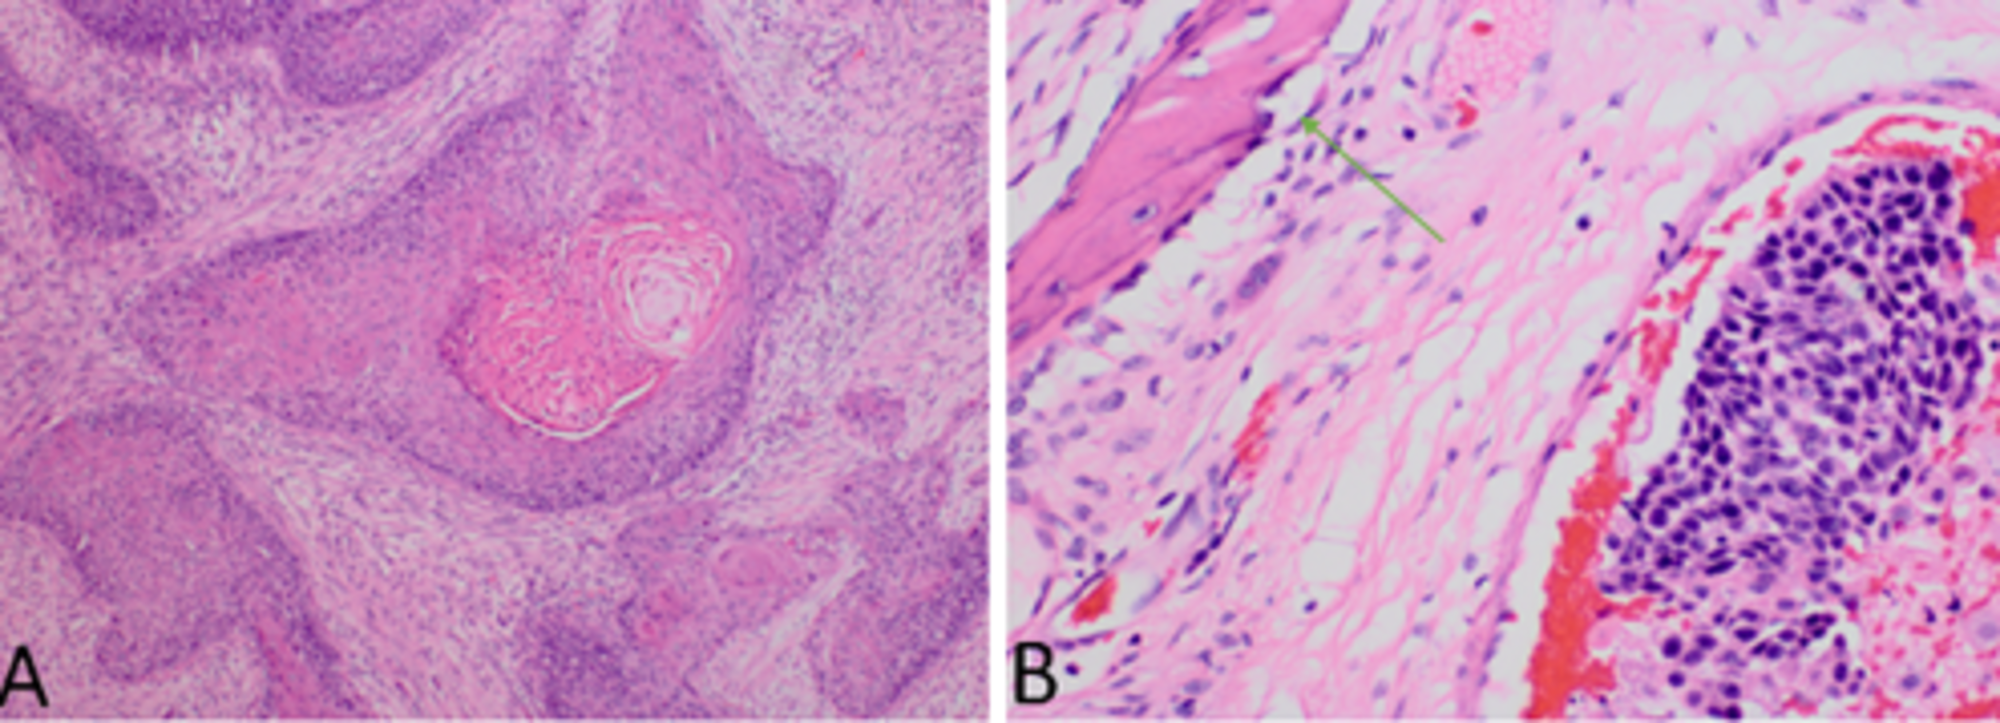 squamous cell carcinoma arising in inverted papilloma